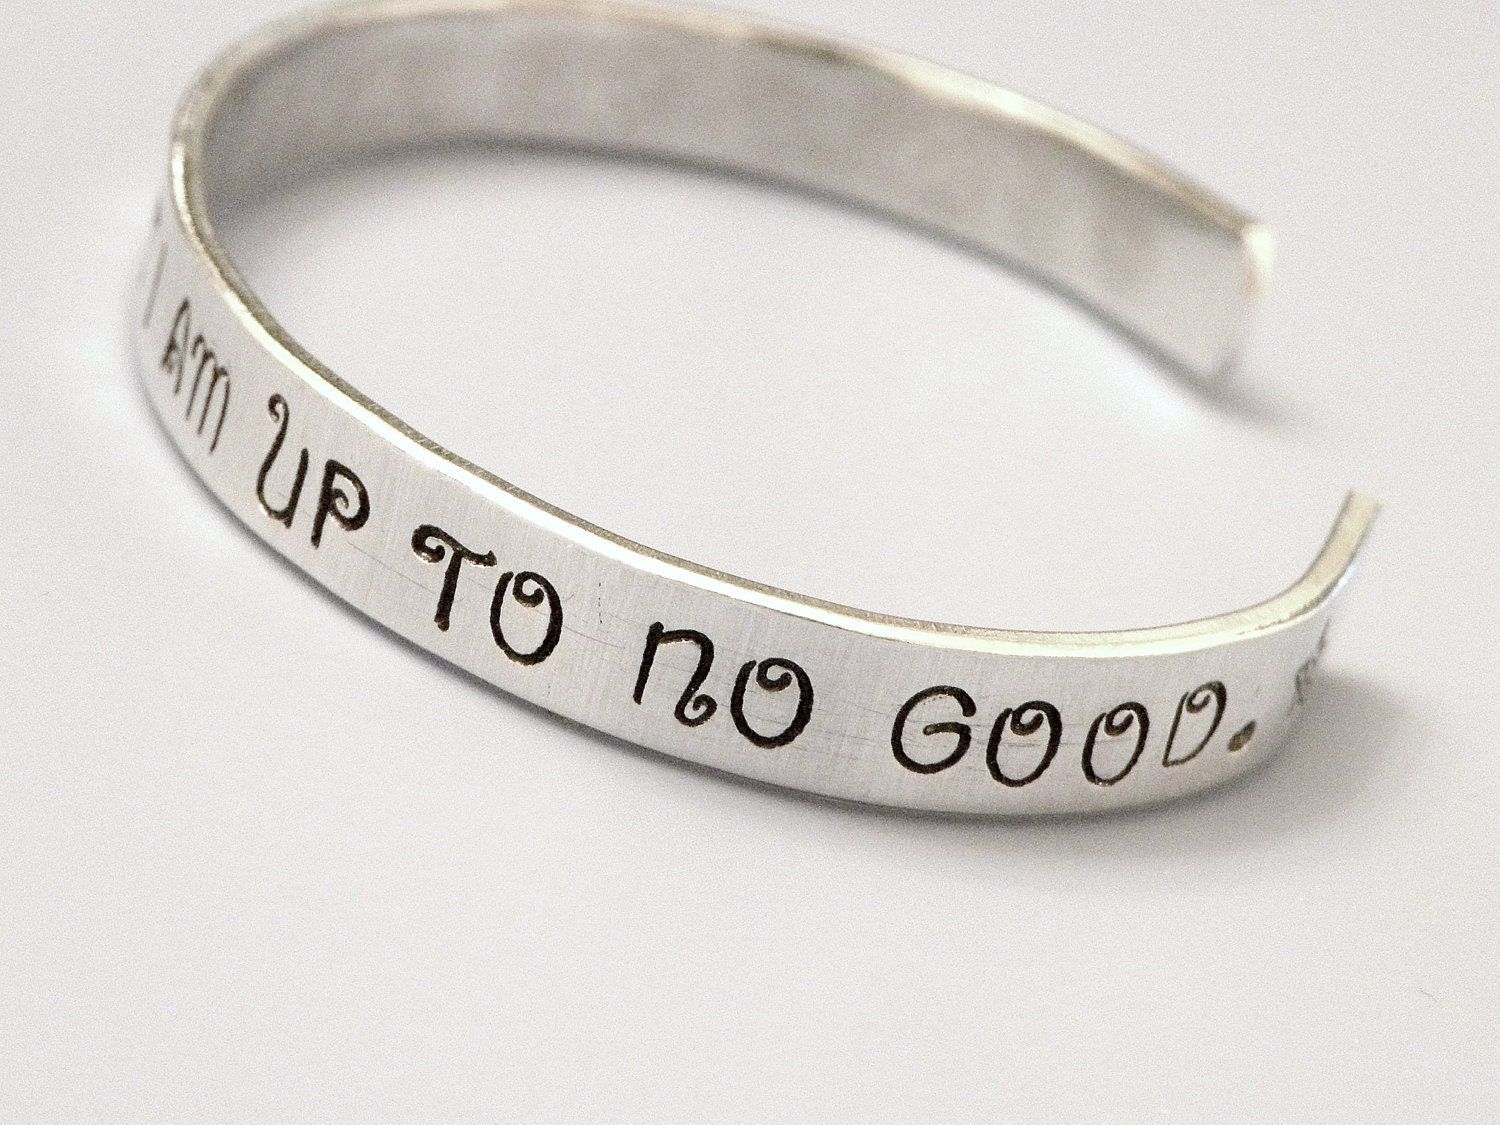 Stamped Harry Potter Solemnly Swear No Good Custom Silver Metal Thin Cuff Bracelet